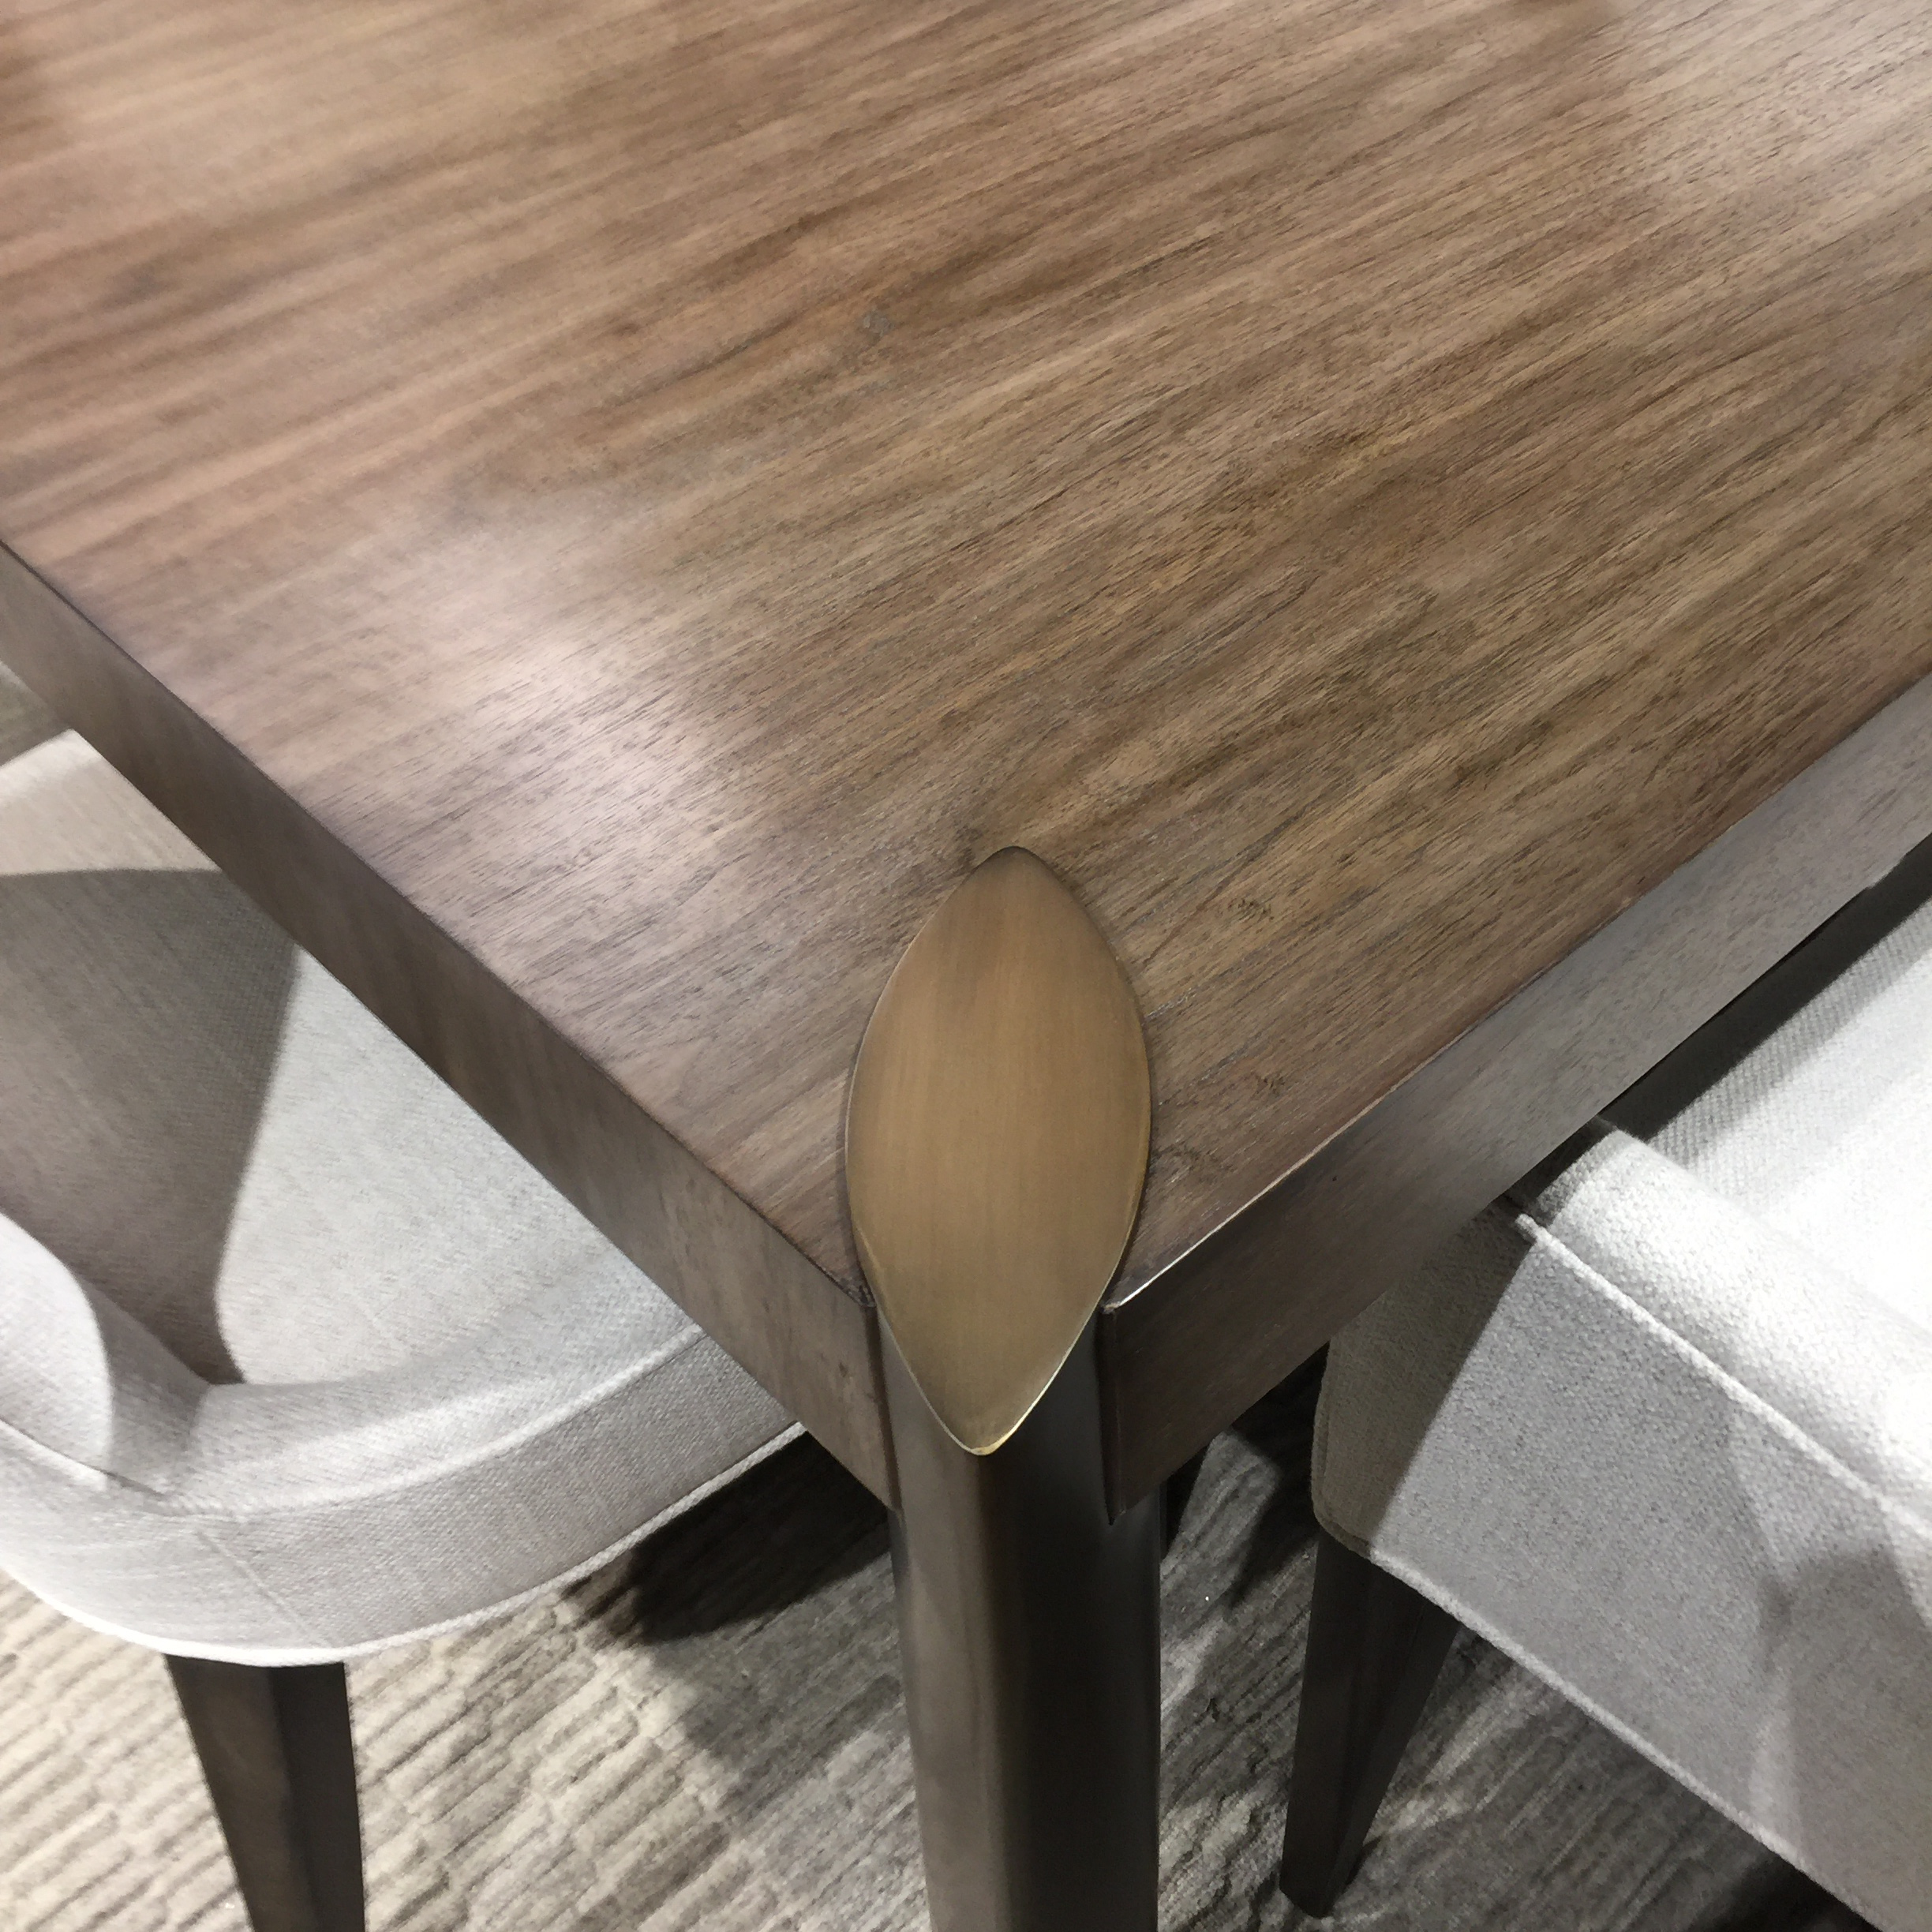 wood table accented with brass legs